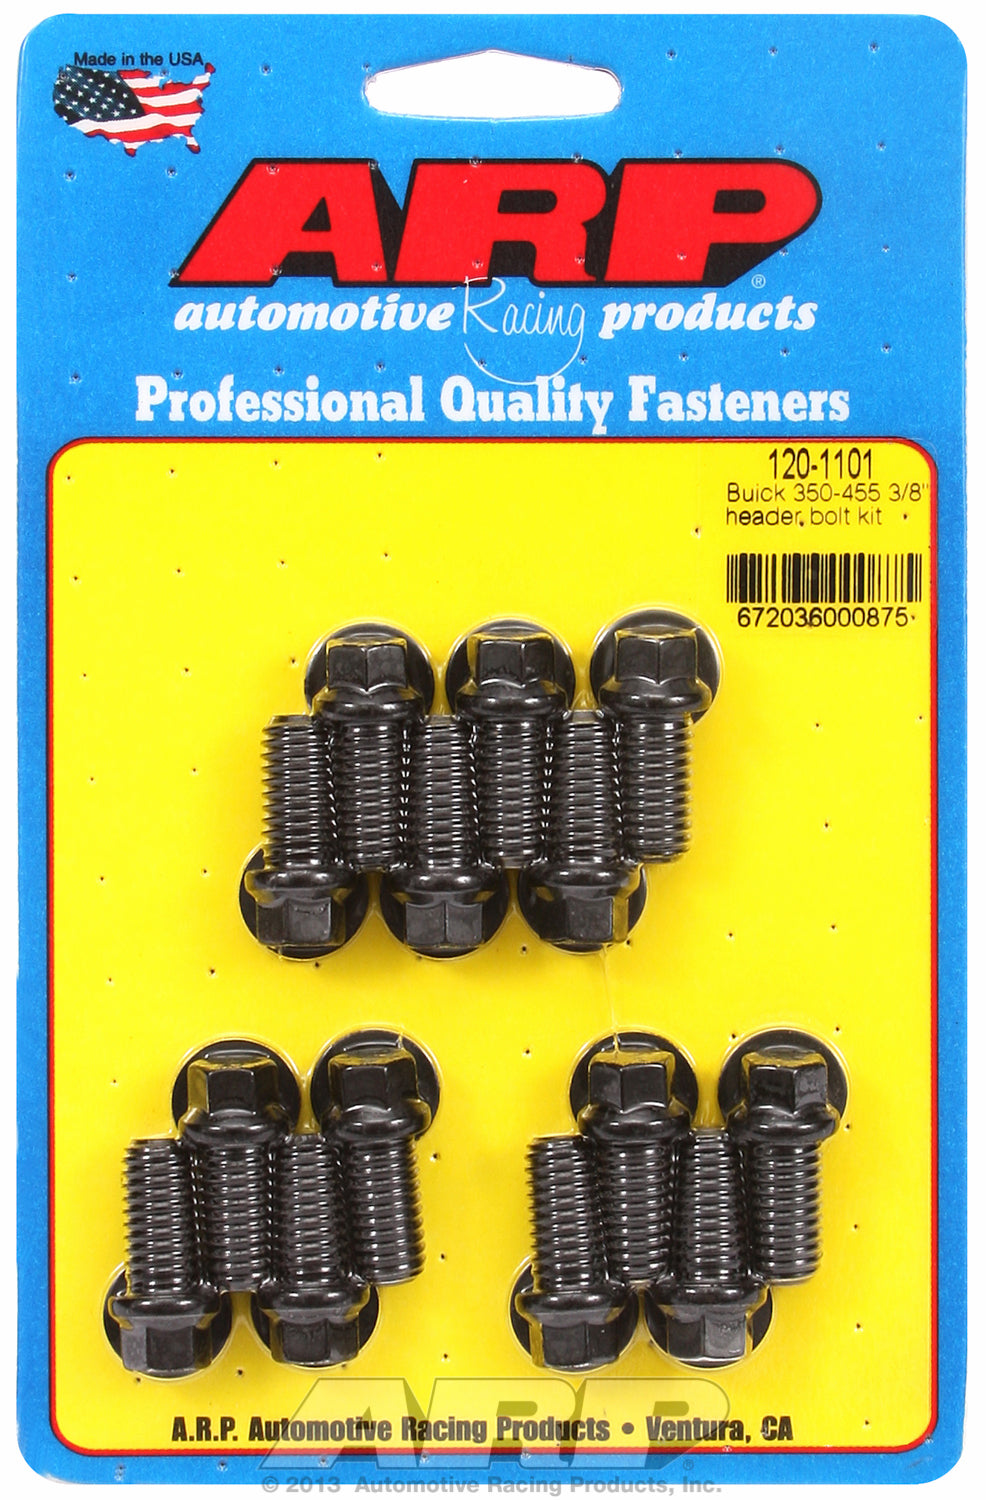 Header Bolt Kit For Buick 350-455 cid Black Oxide Hex Head